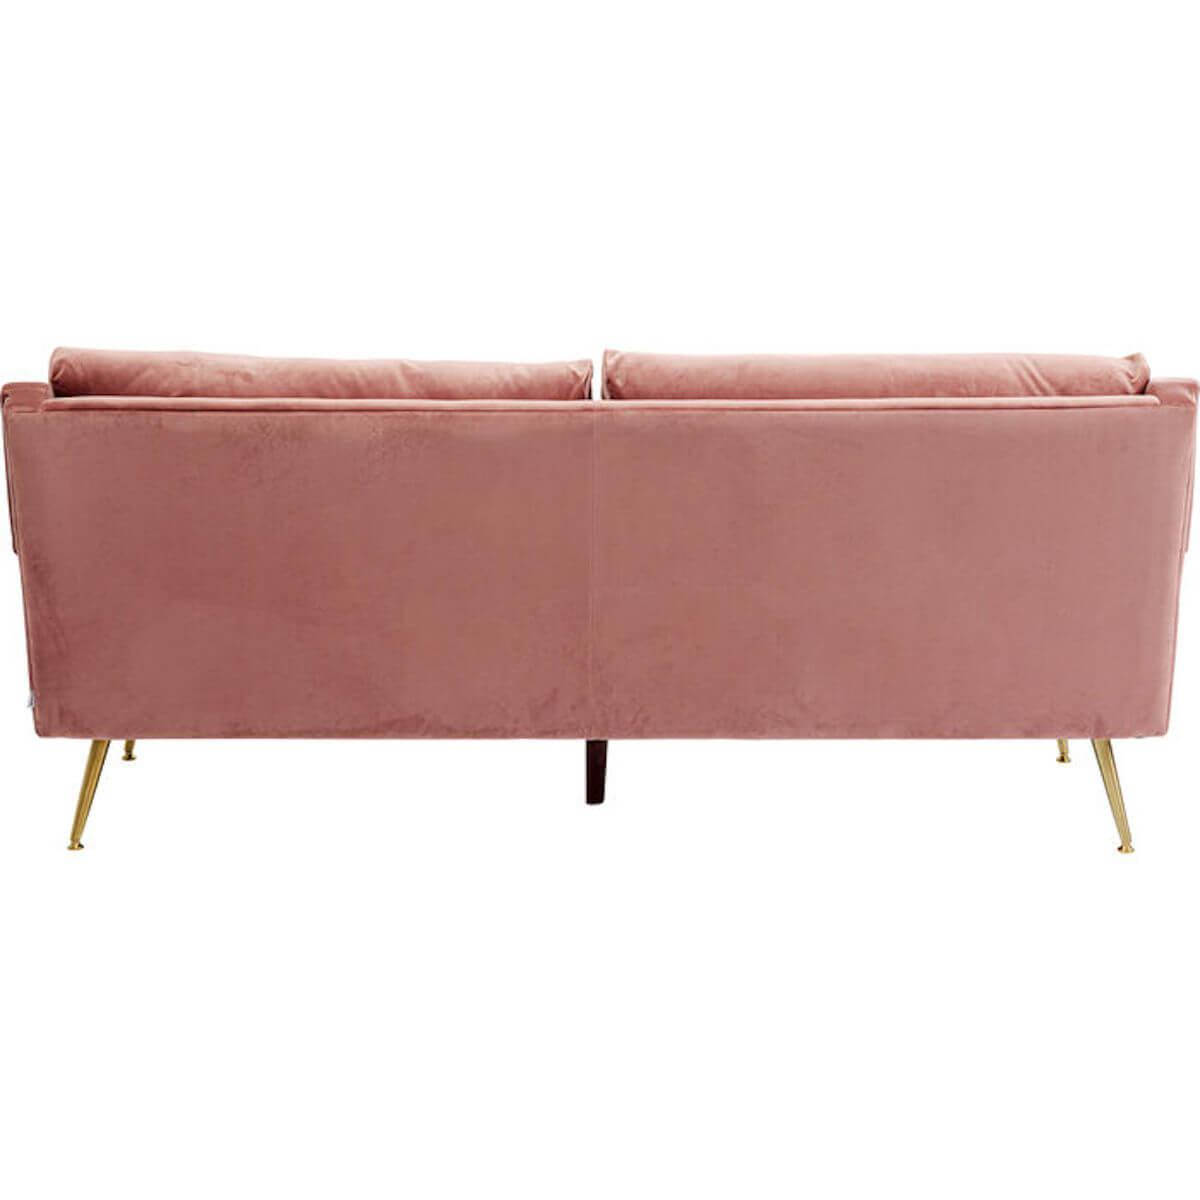 Sofa San Diego rose 3-places 210cm